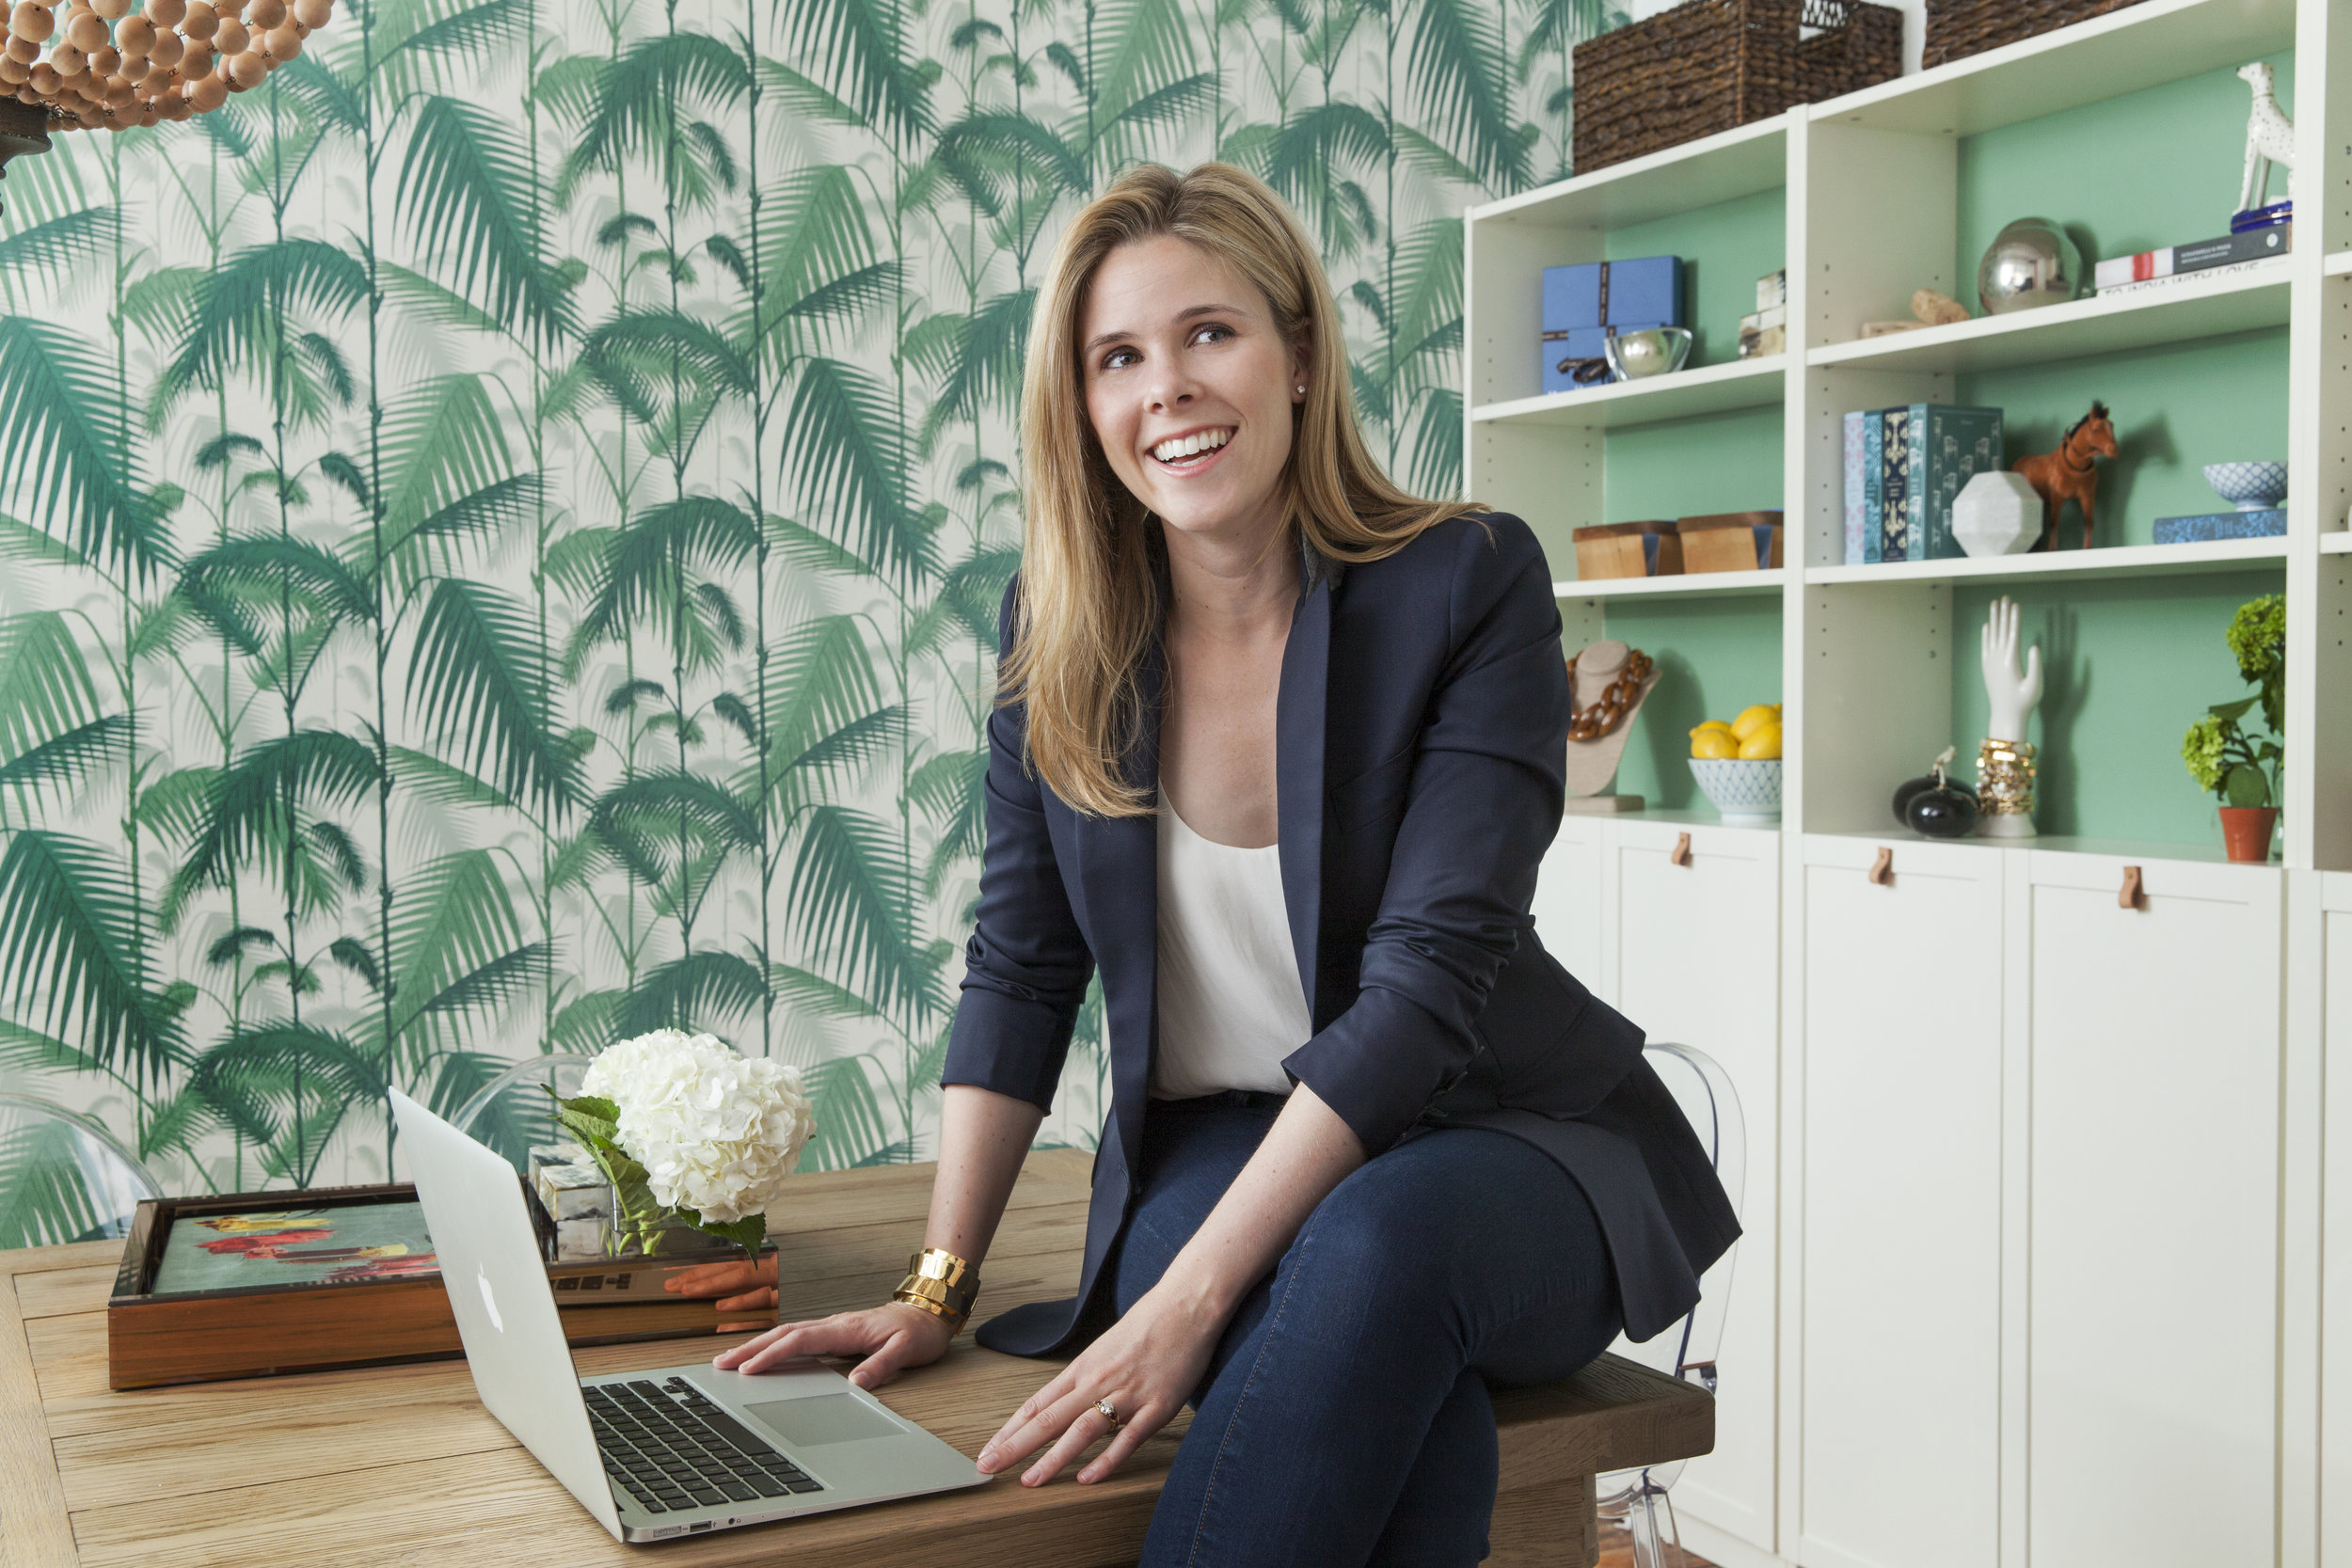 Halsbrook.com   founder and CEO Halsey Schroeder in her New York City office. Her beautifully curated online shopping site is filled with unique, high-quality pieces for women 50 and up. As a special gift to readers of The O Report, she's offering a 20% discount sitewide from April 7-April 21.This offer cannot be combined with other offers. To get this special discount, please use code OLIVIA20 at checkout.